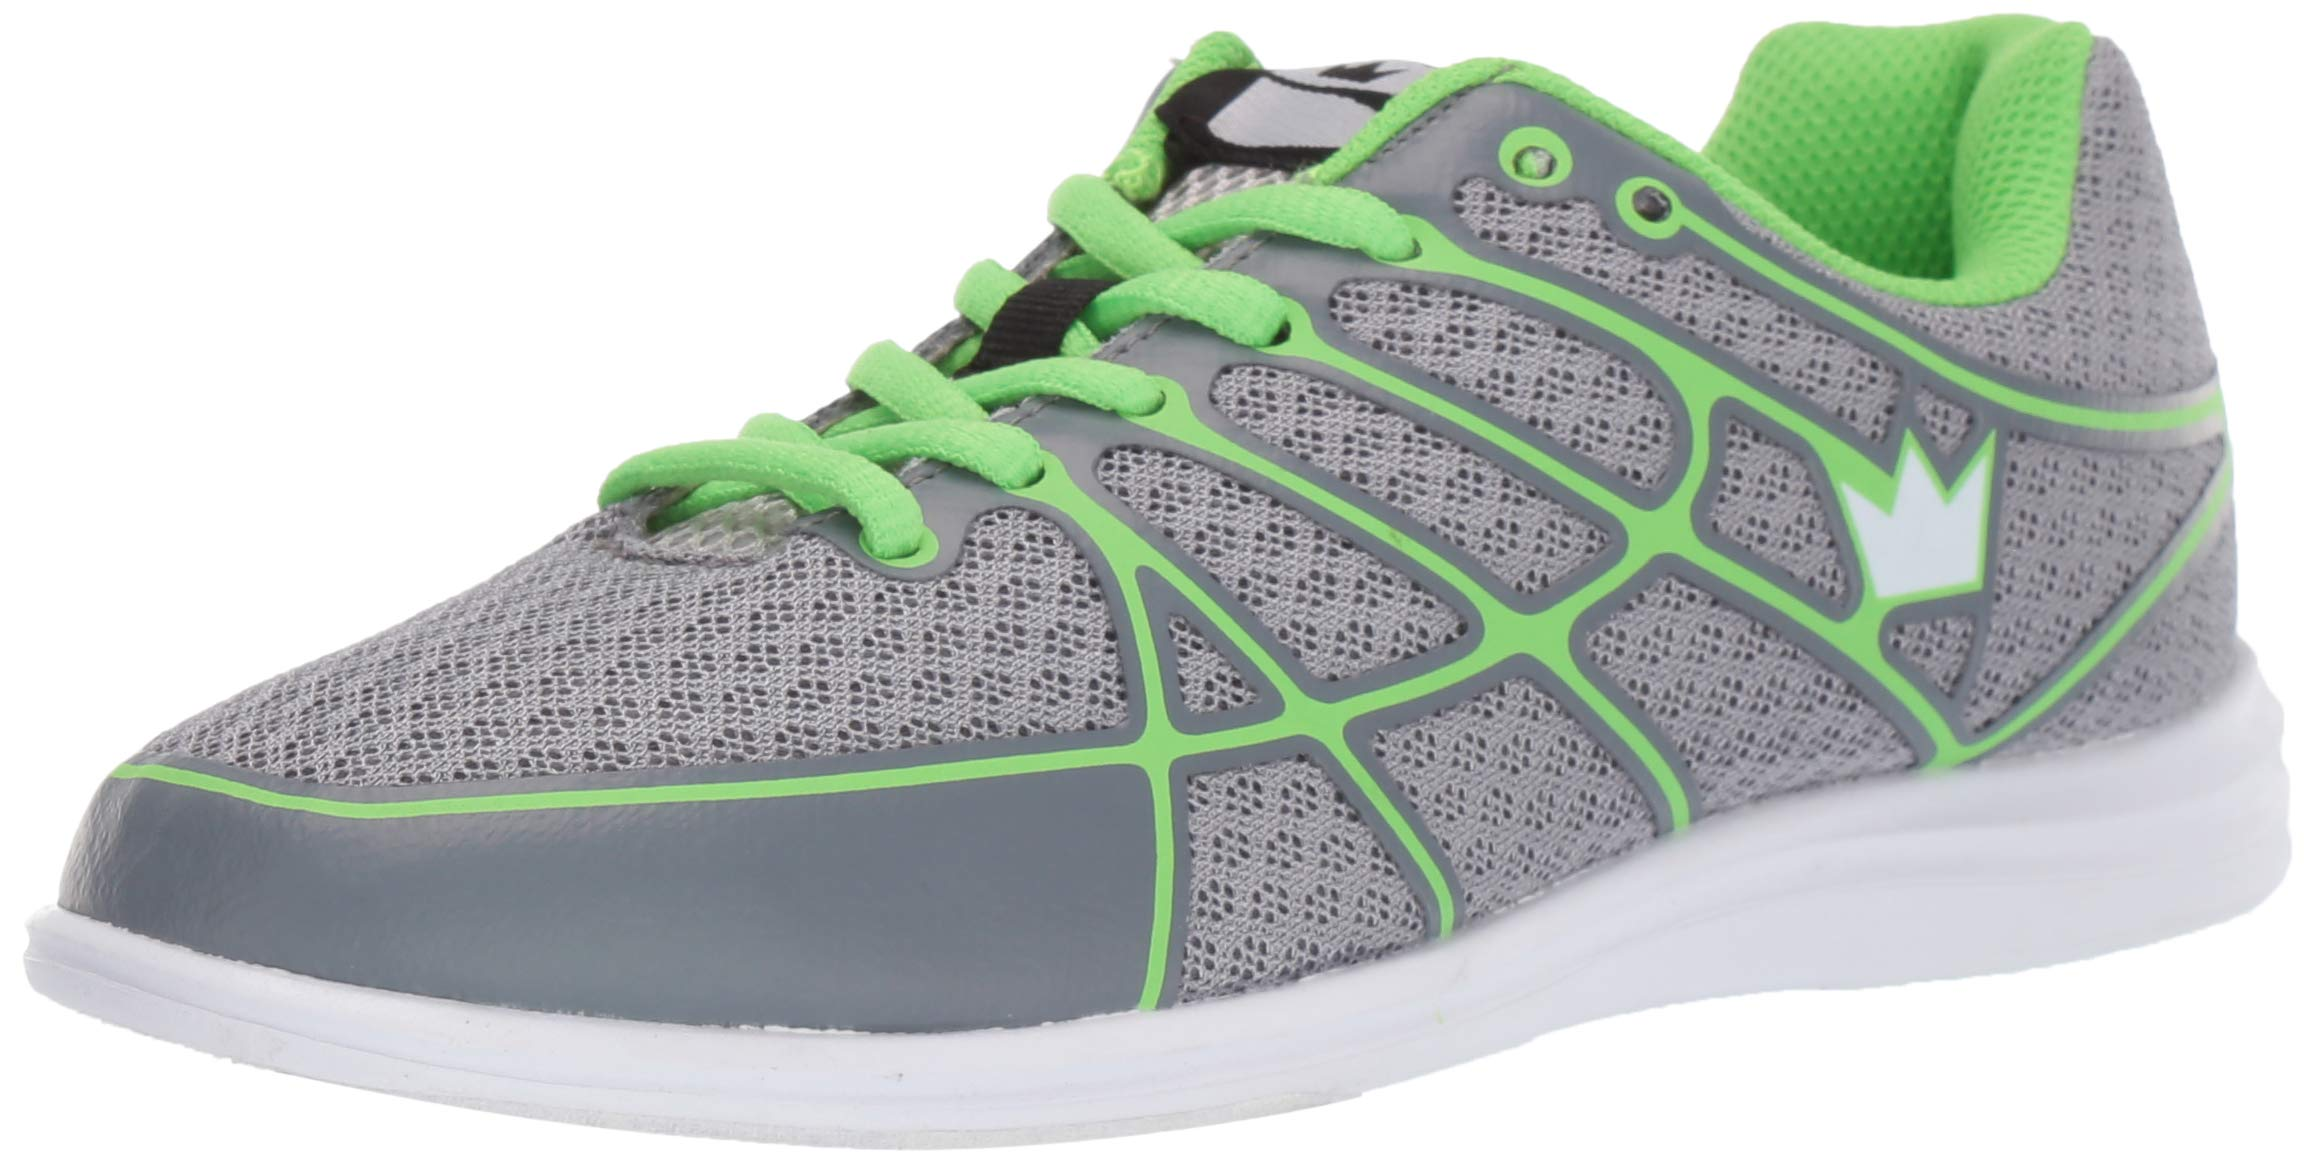 Brunswick Aura Women's Bowling Shoes, Grey/Lime, 6 by Brunswick